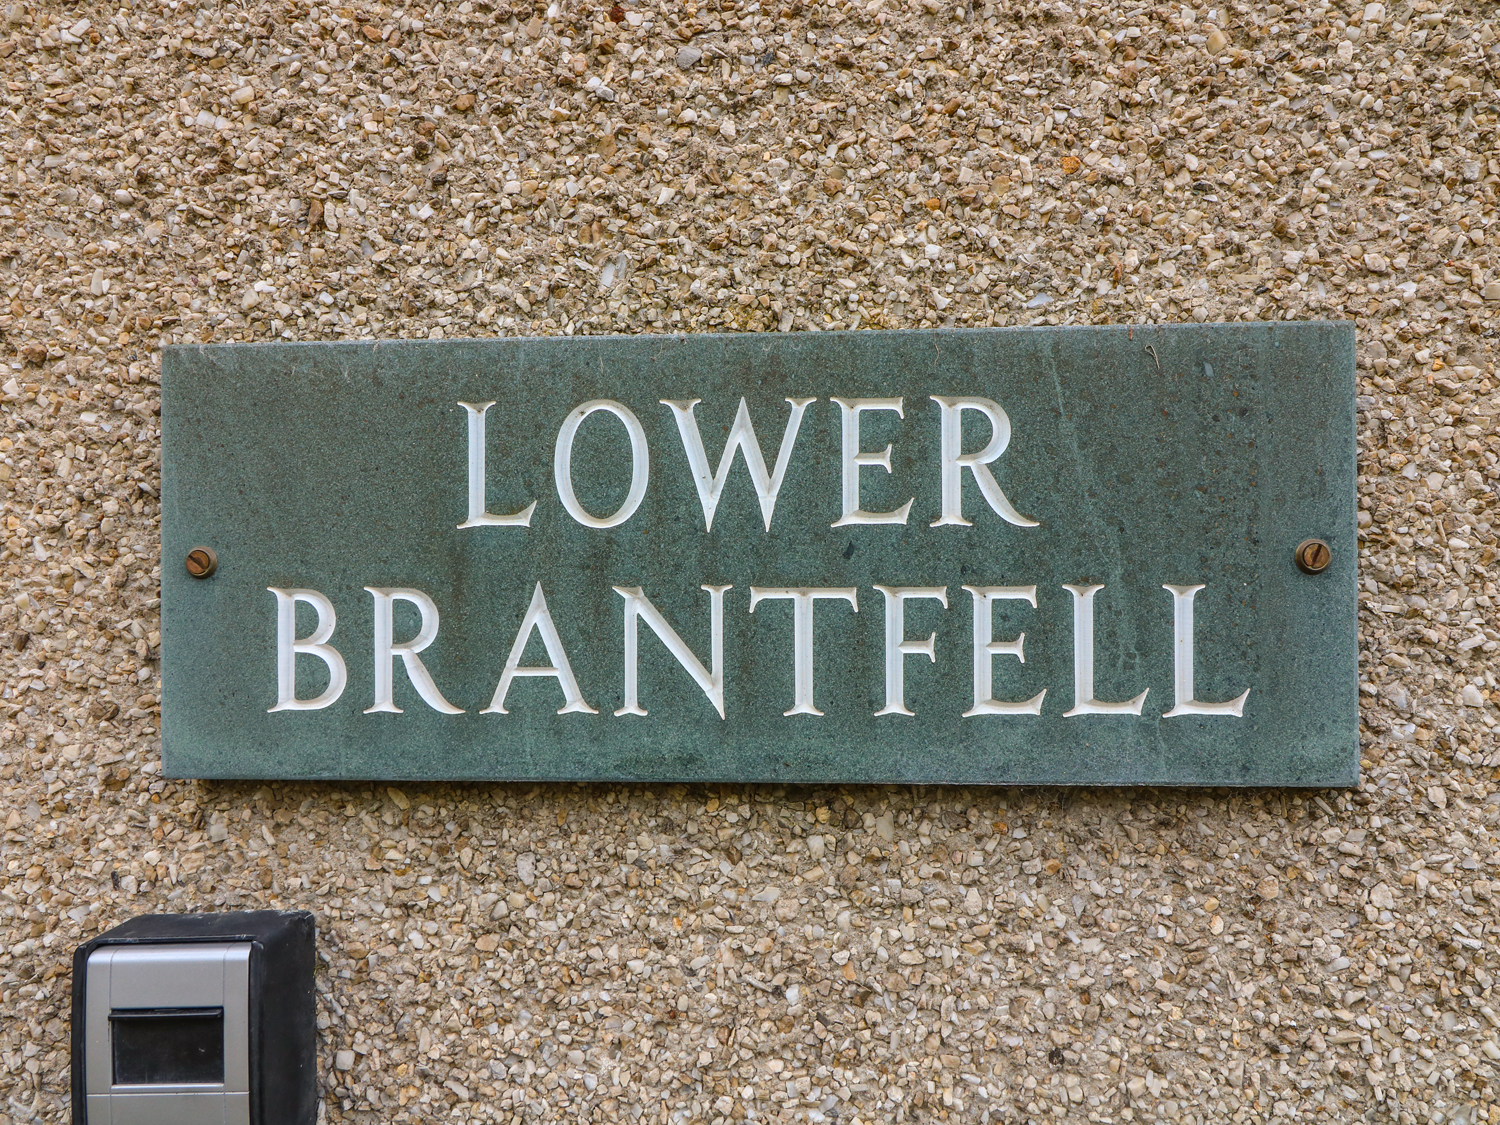 Lower Brantfell